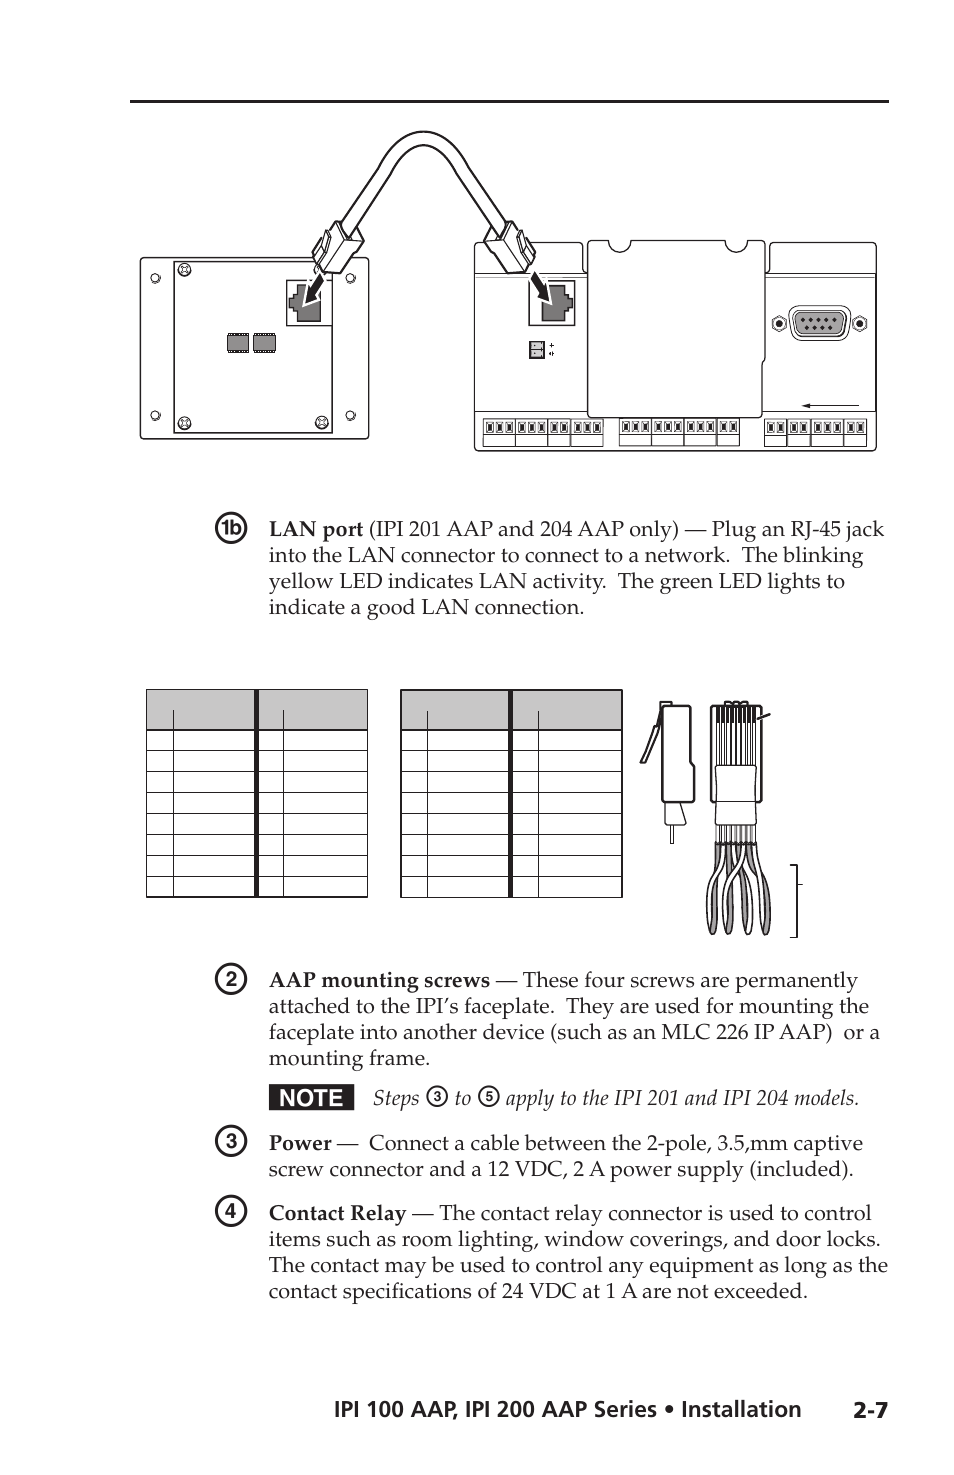 Ipi Rear Panel Features And Cabling Steps Extron Electronic Mlc Light Controller Wiring Diagram 100 Series User Manual Page 21